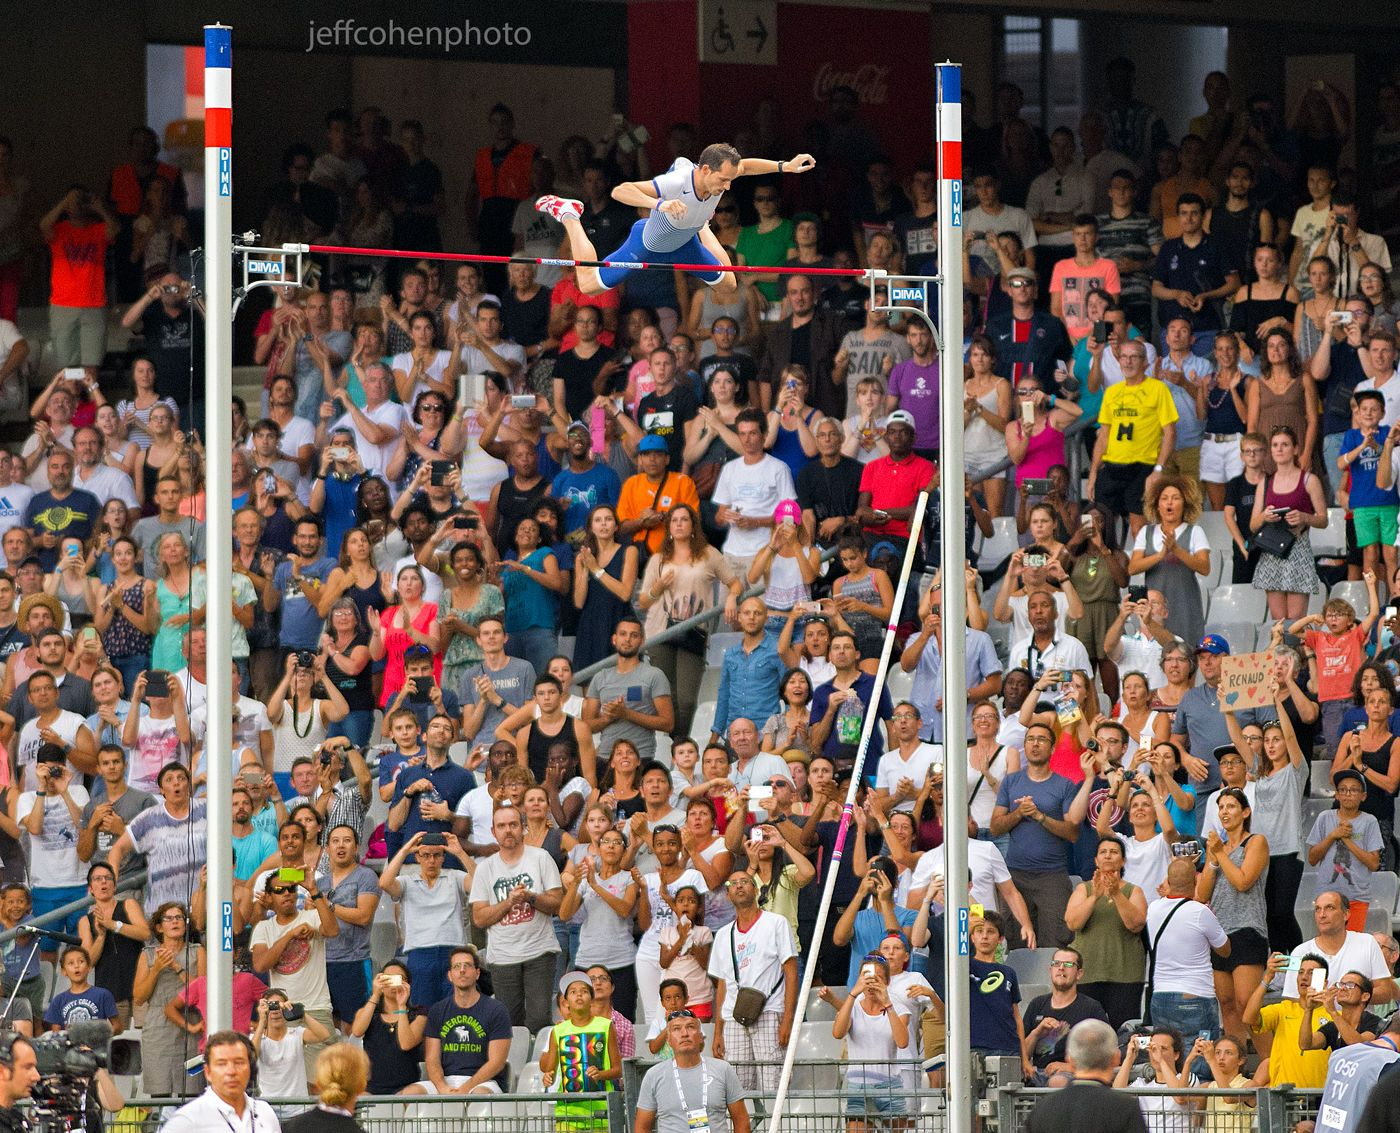 1r2016_meeting_de_paris_lavillenie_pv_jeff_cohen_photo_880_web.jpg